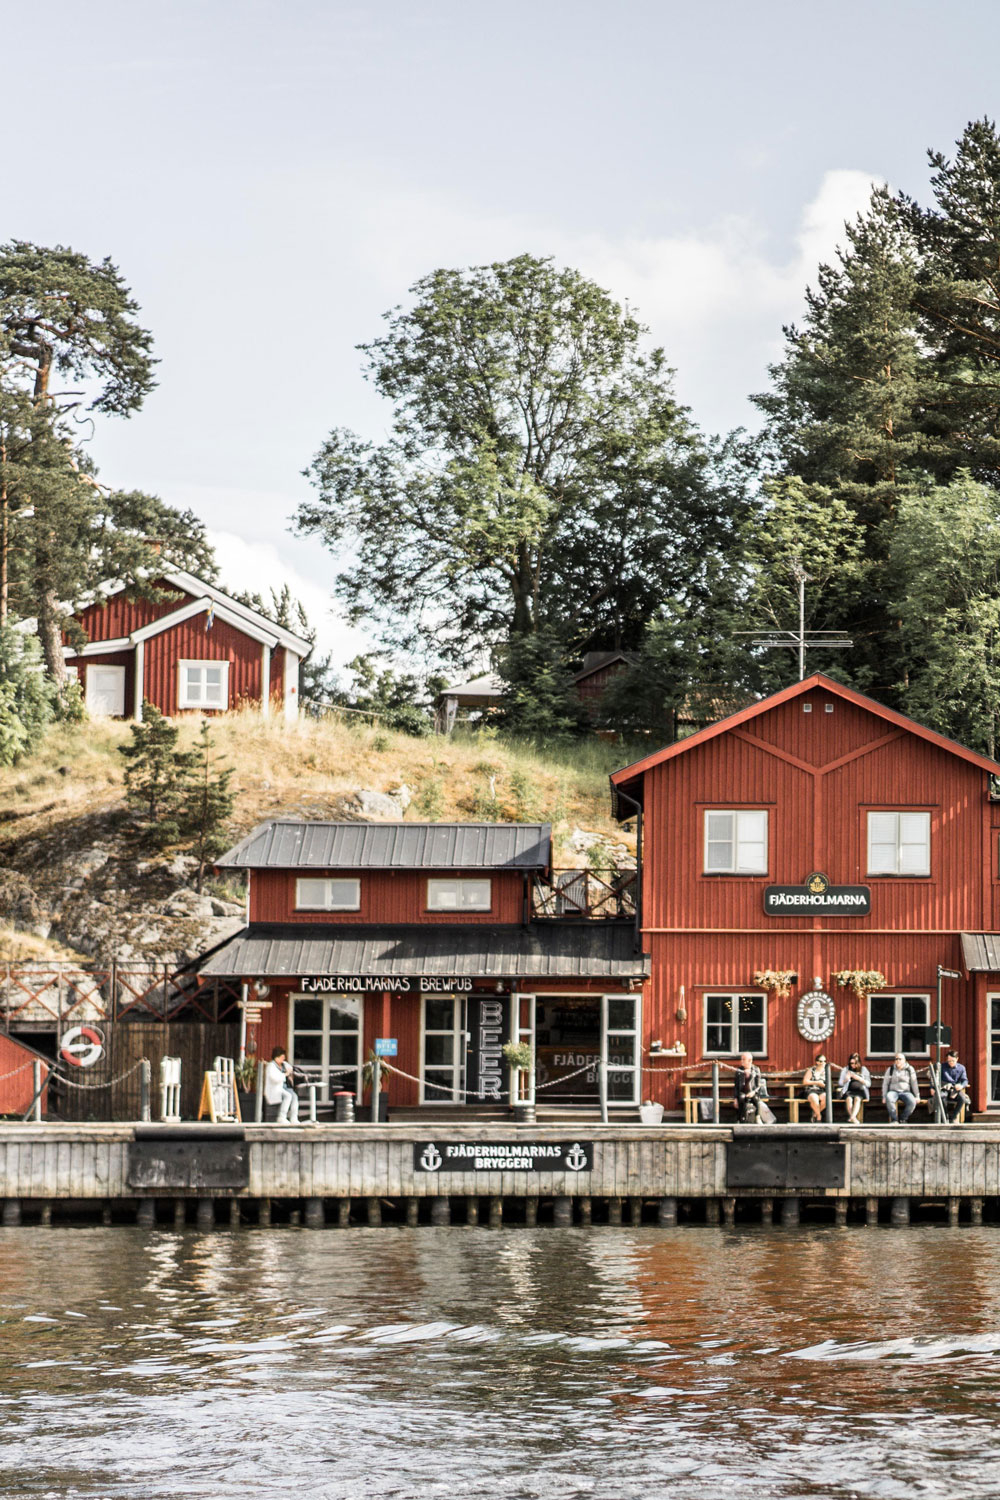 Fjäderholmarnas brewpub in Stockholm's archipelago. We offer a vide variety of our beers, served directly from the bright beer tanks. You can also grab a bite from our pub menu.